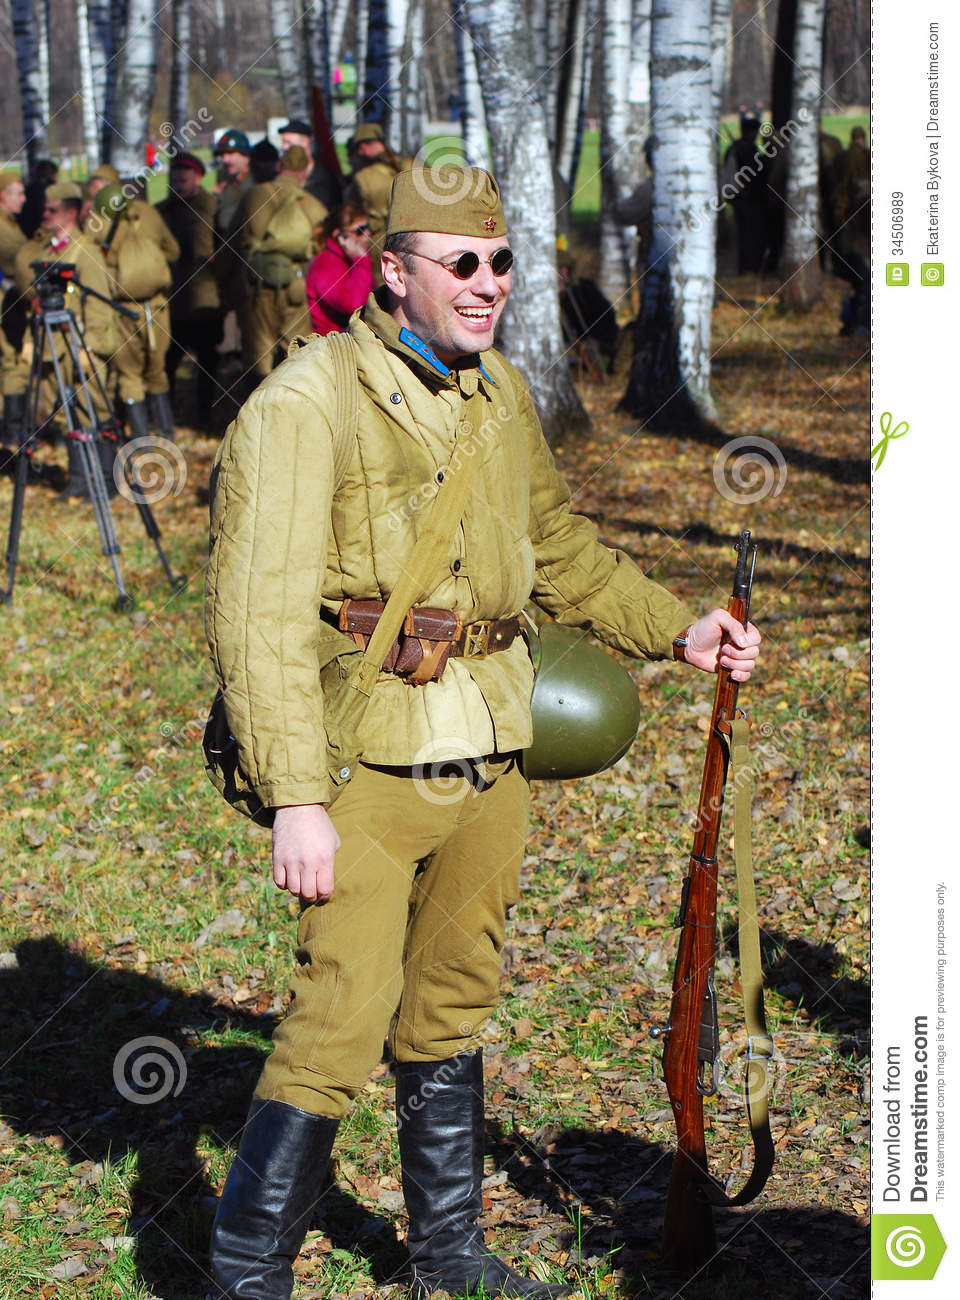 O To Ww Bing Comsquare Root 123: Portrait Of A Smiling Reenactor Editorial Stock Image